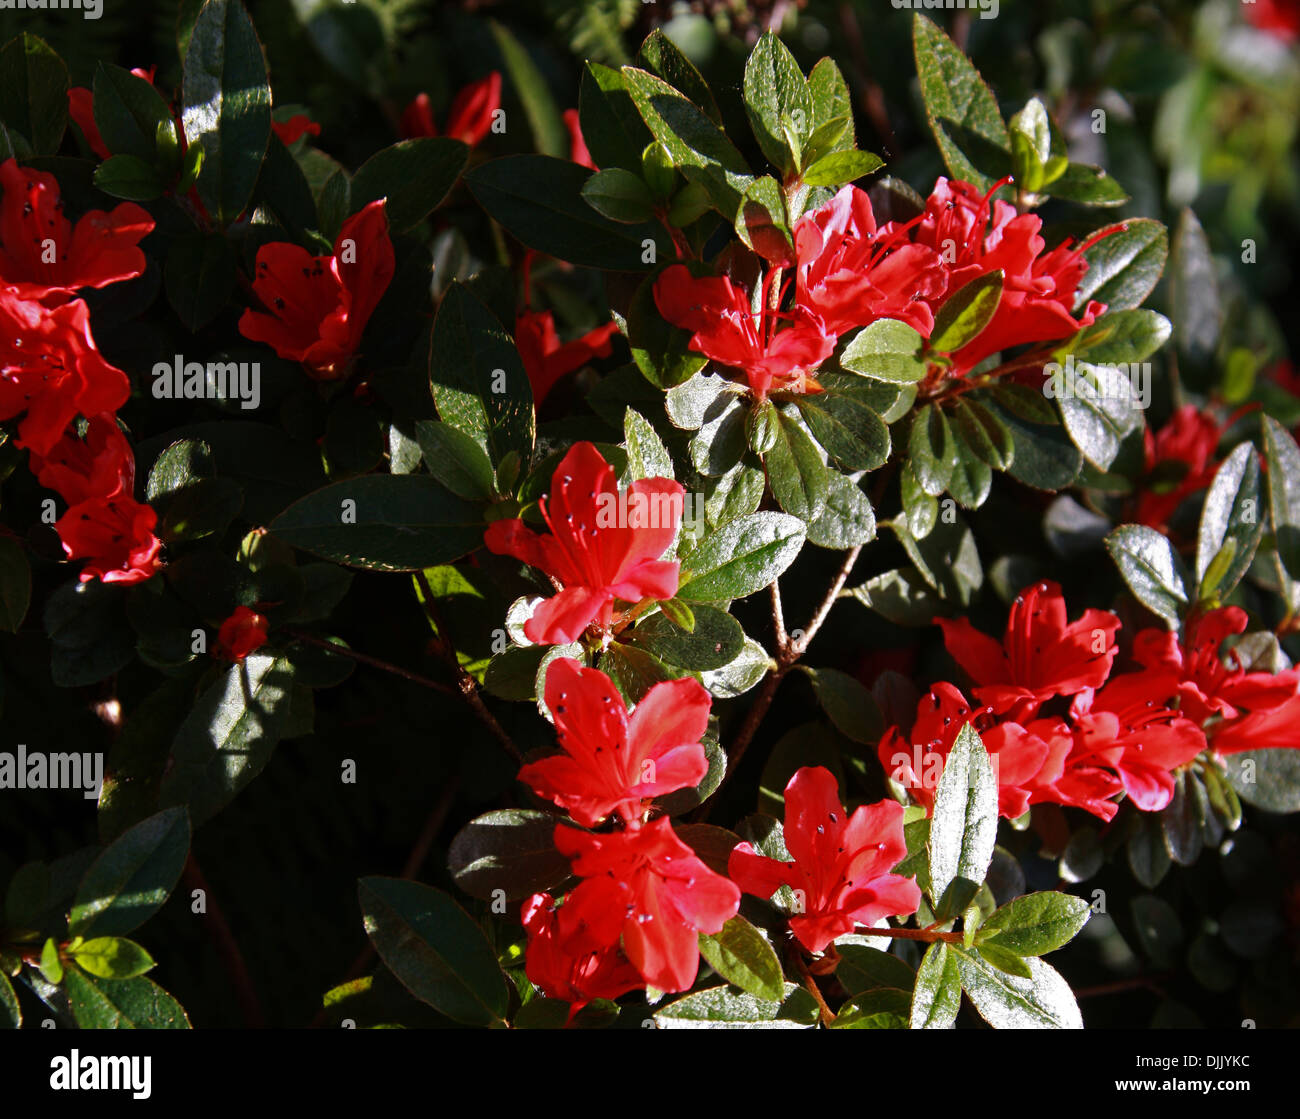 Rhododendron 'Red Fountain', Ericaceae. - Stock Image